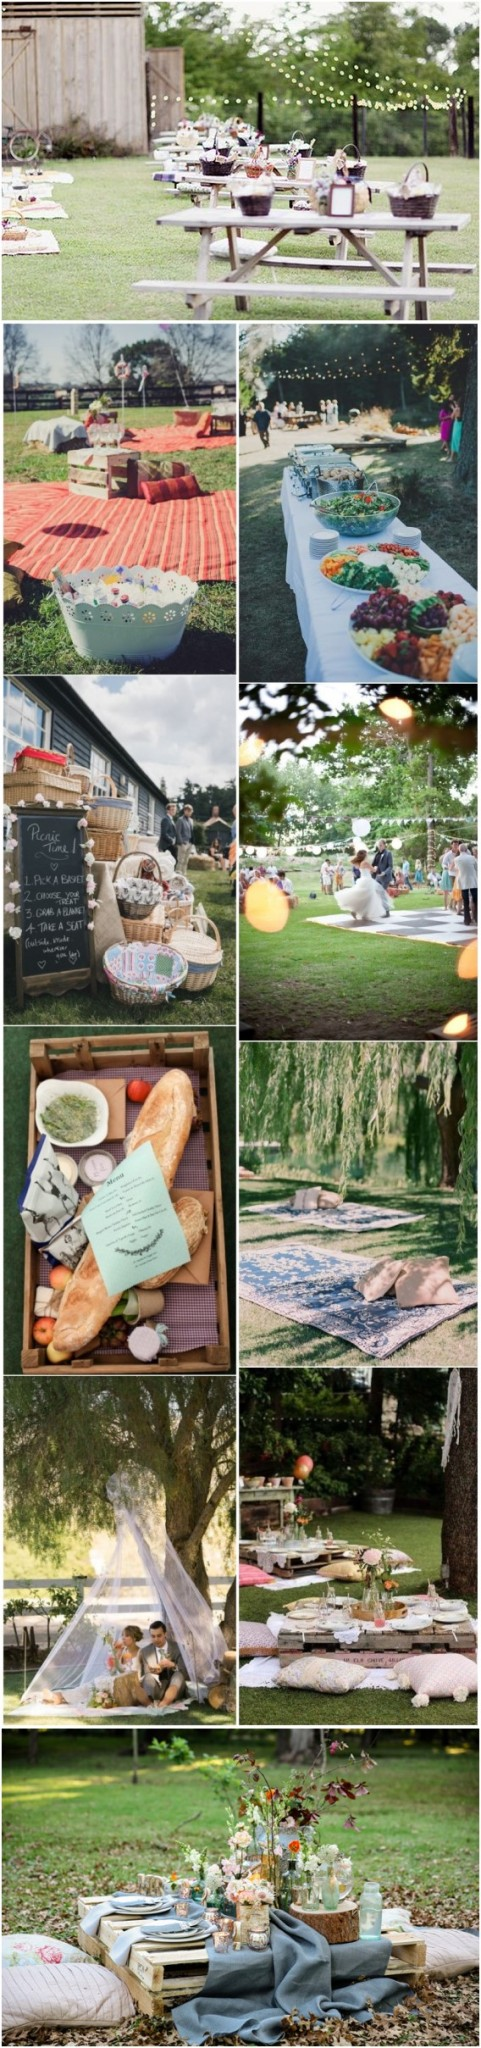 Budget Friendly Picnic Wedding Reception Ideas